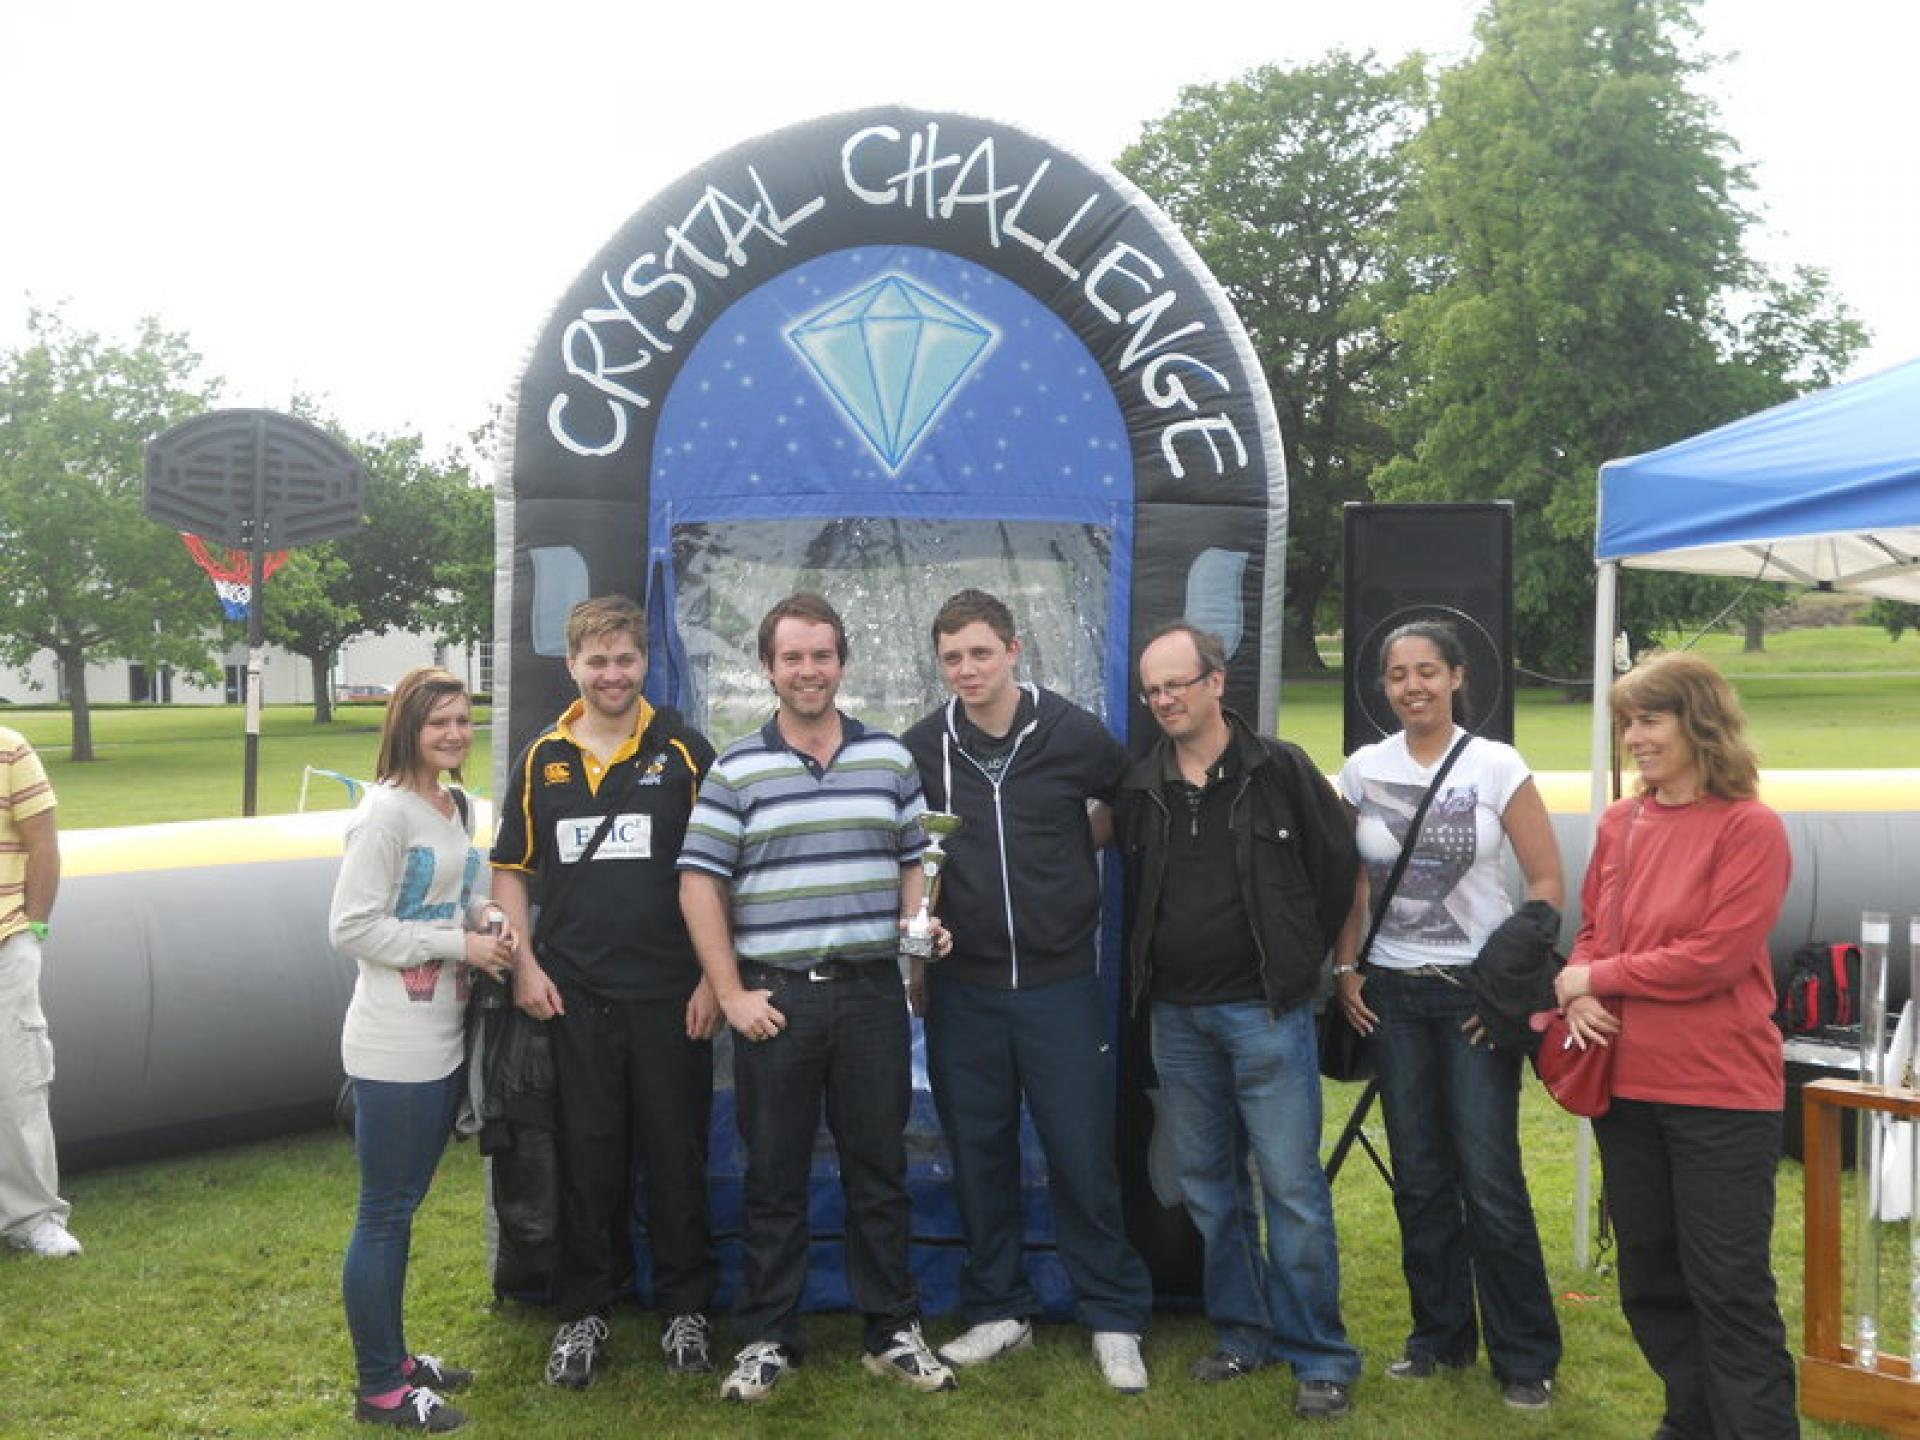 Spire Healthcare's Crystal Challenge Team Building Away-Day